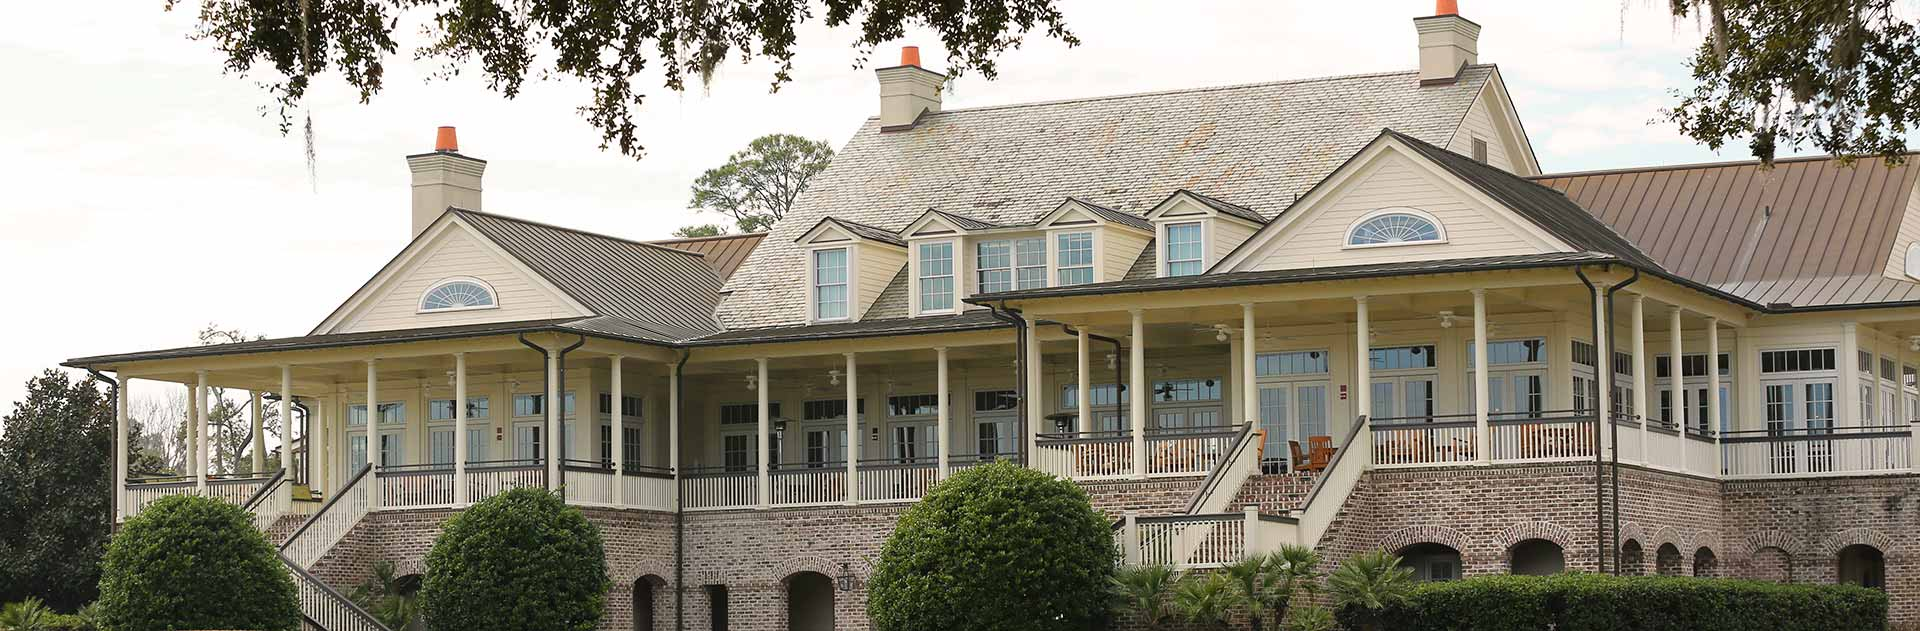 Colleton River Plantation Pete Dye Club House